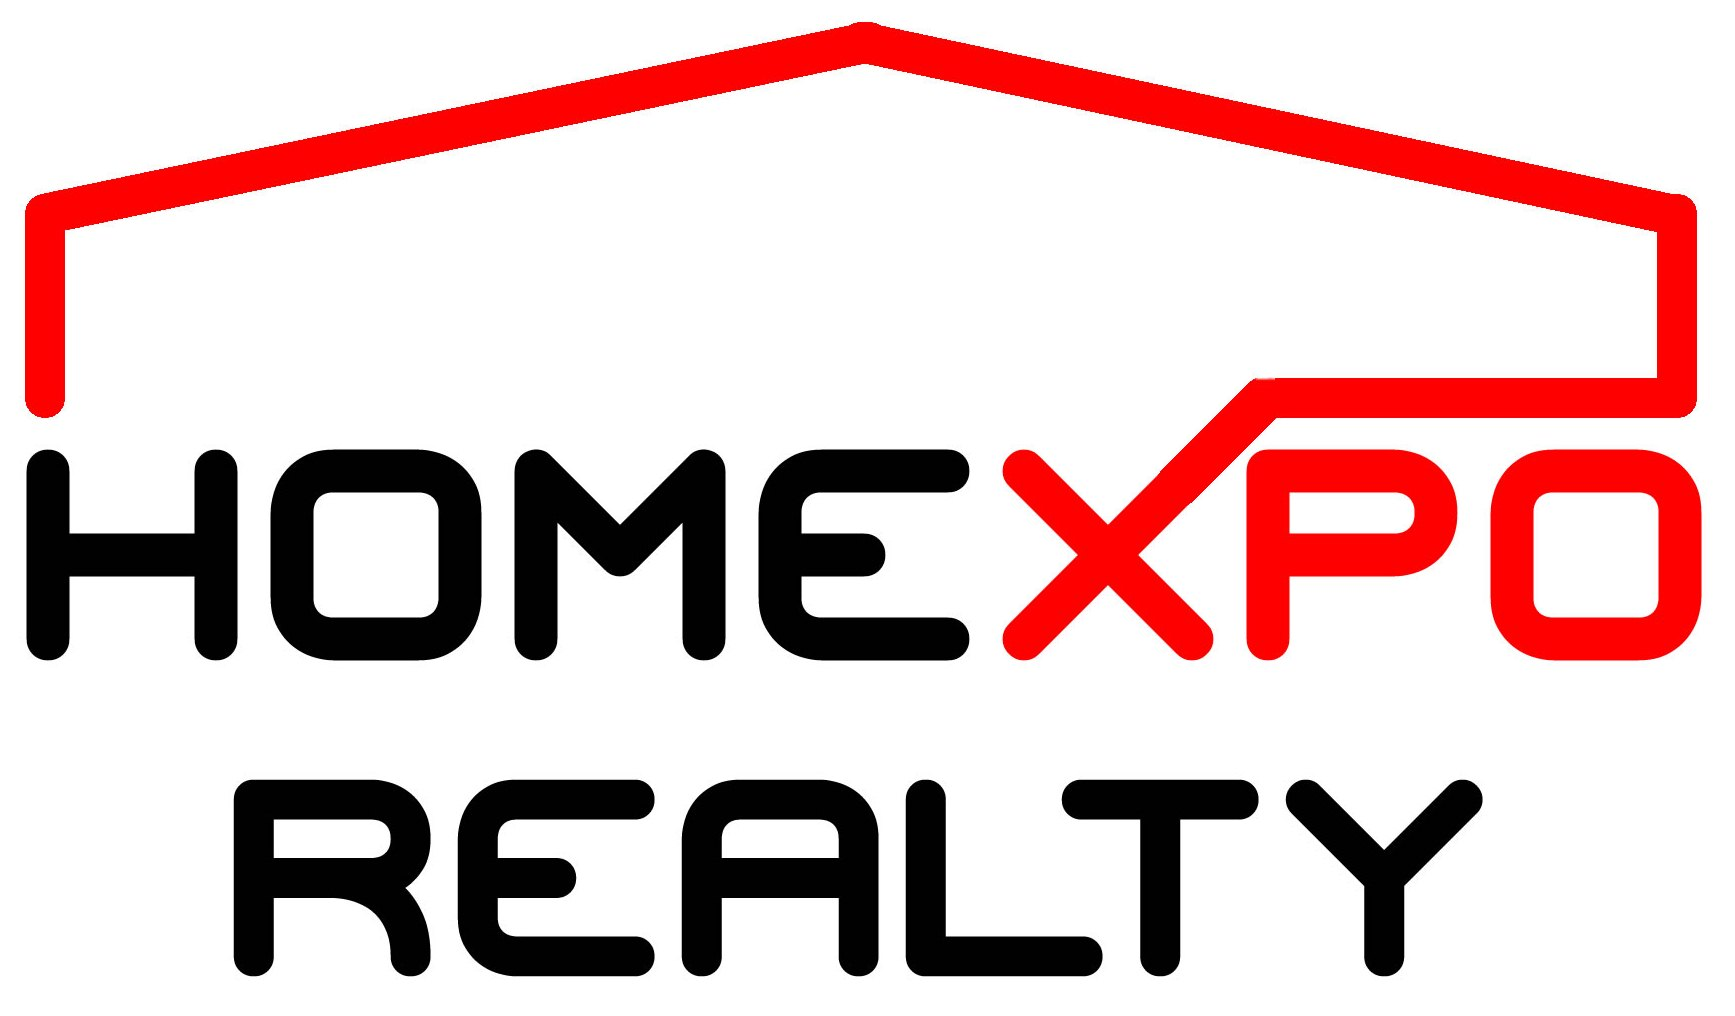 Homexpo Realty